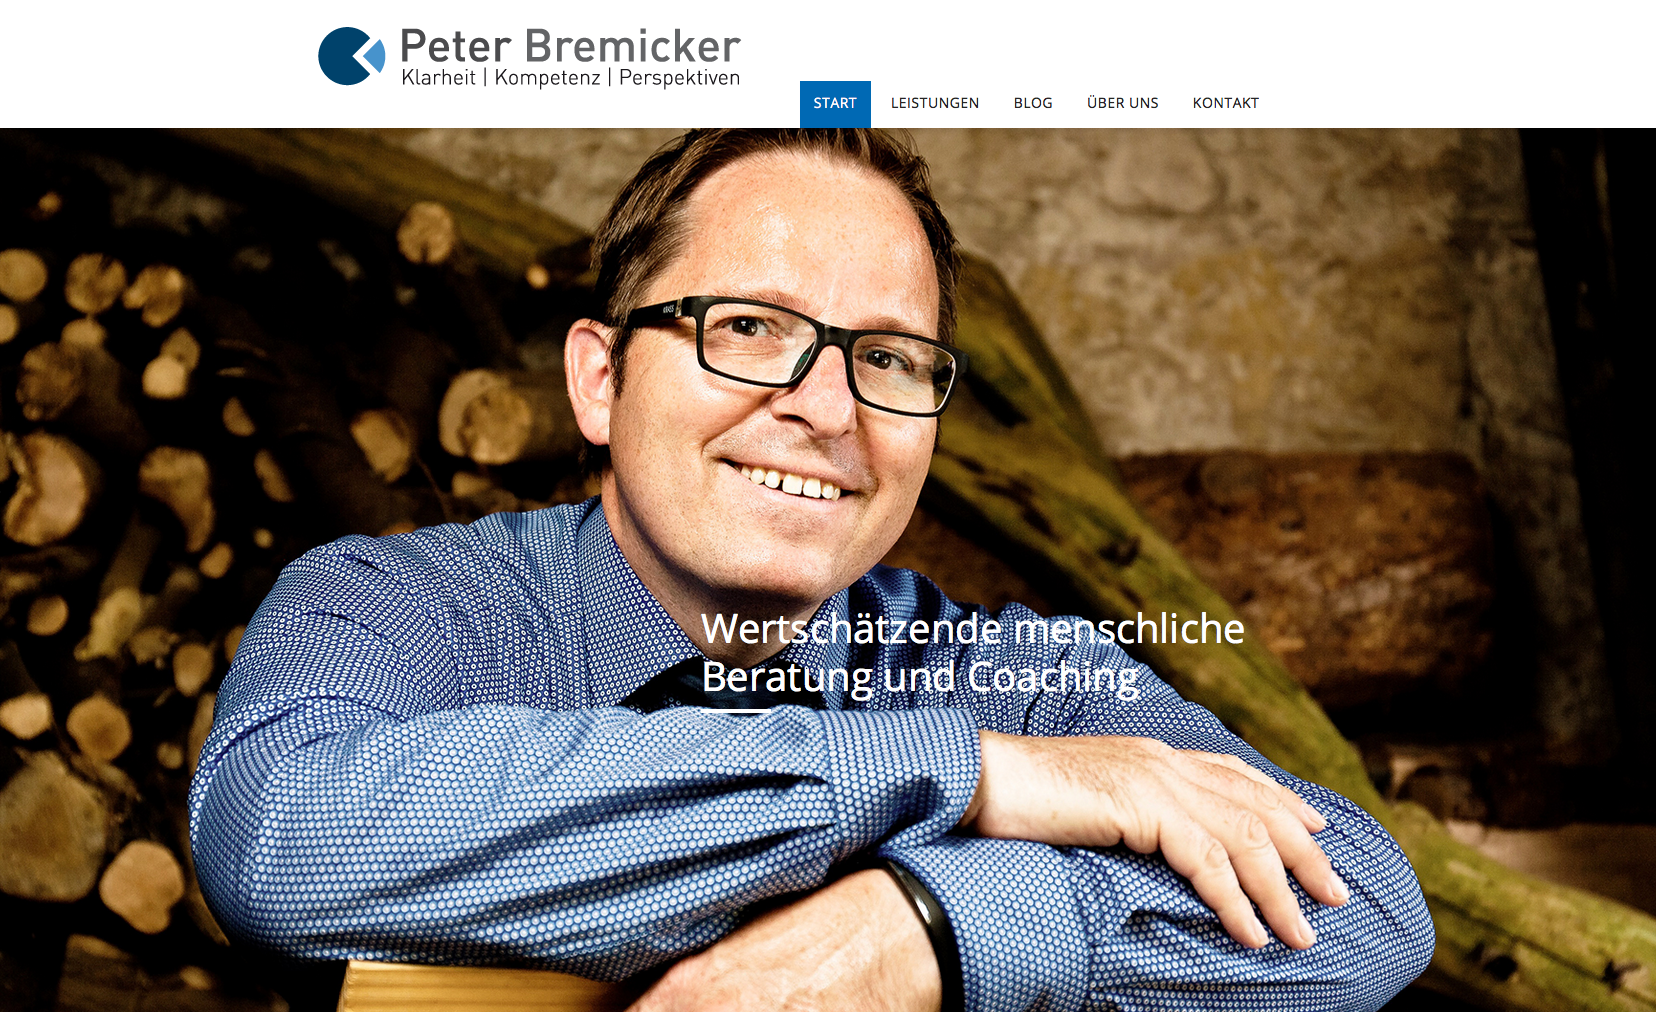 Business Portrait Peter Bremicker